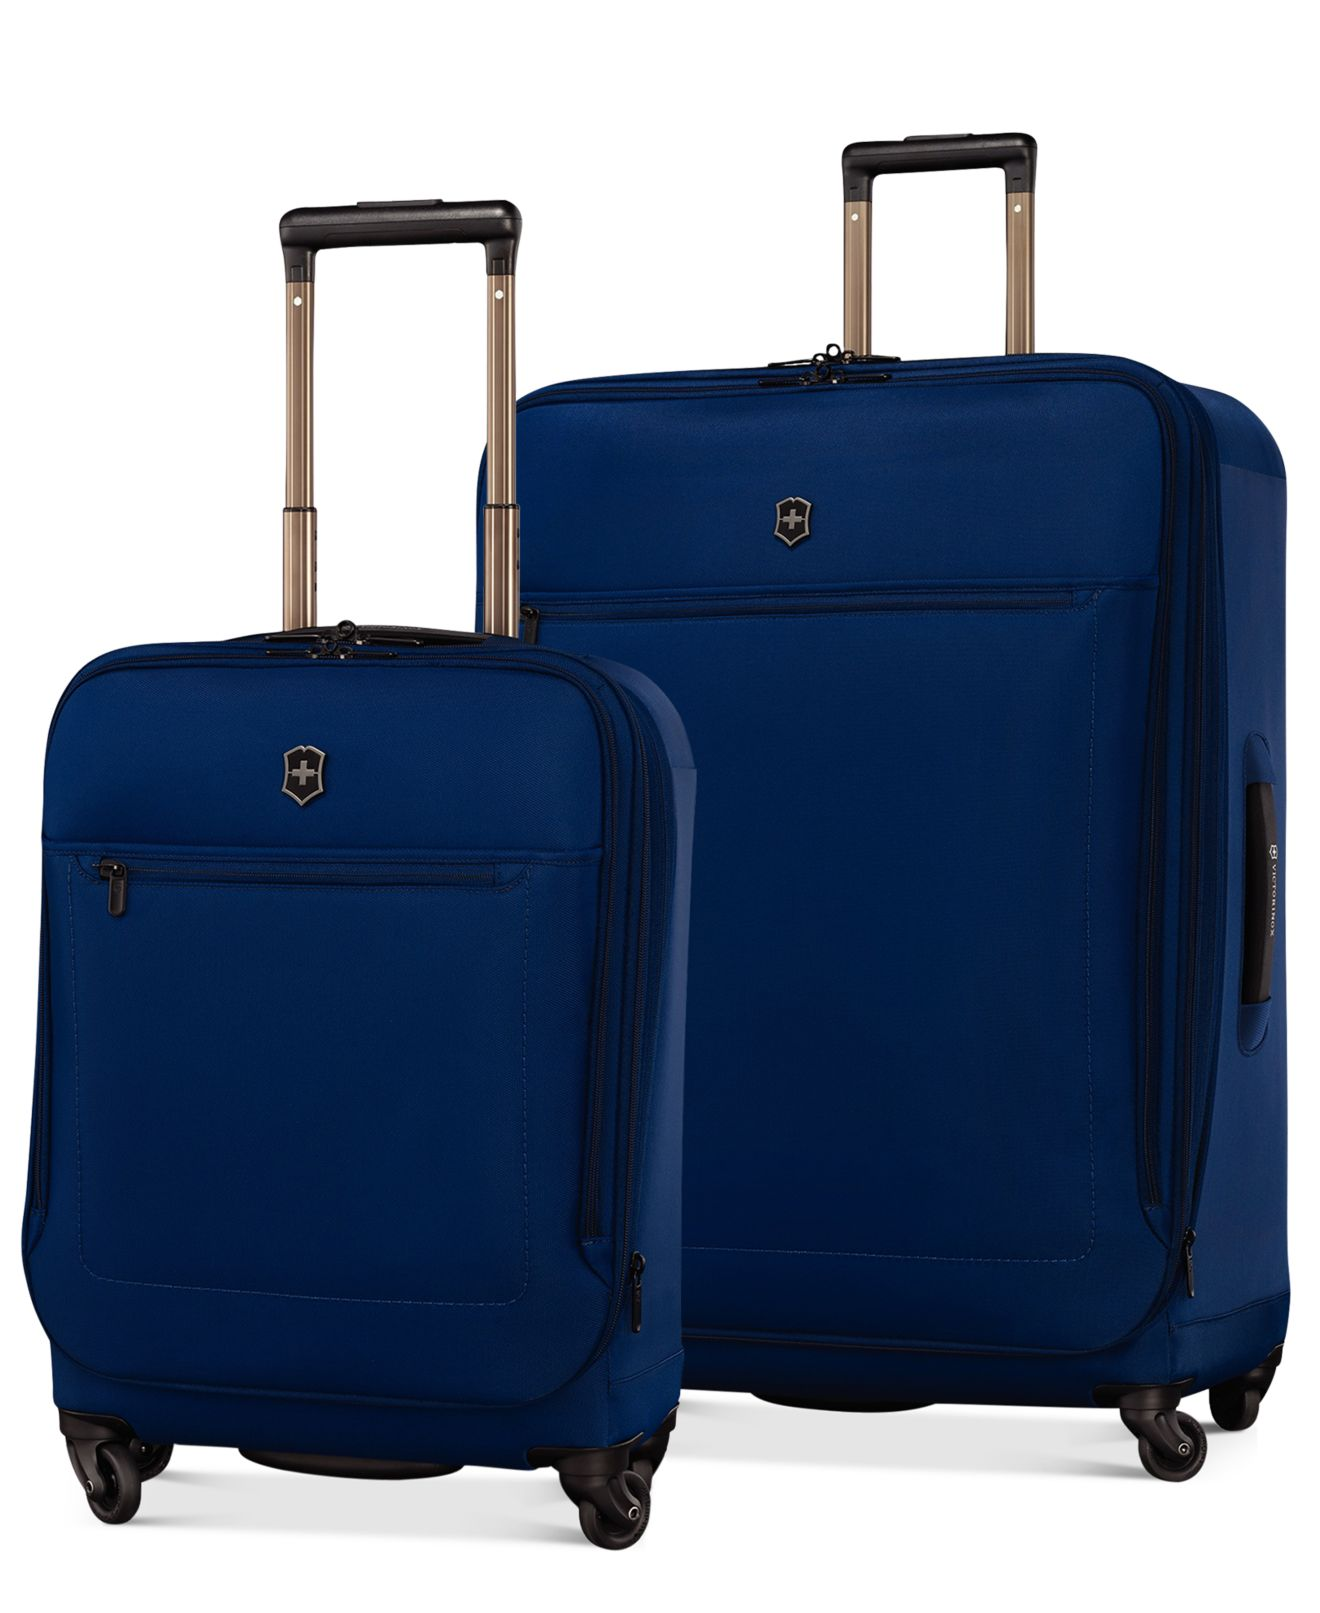 Clearance Carry On Luggage Luggage And Suitcases